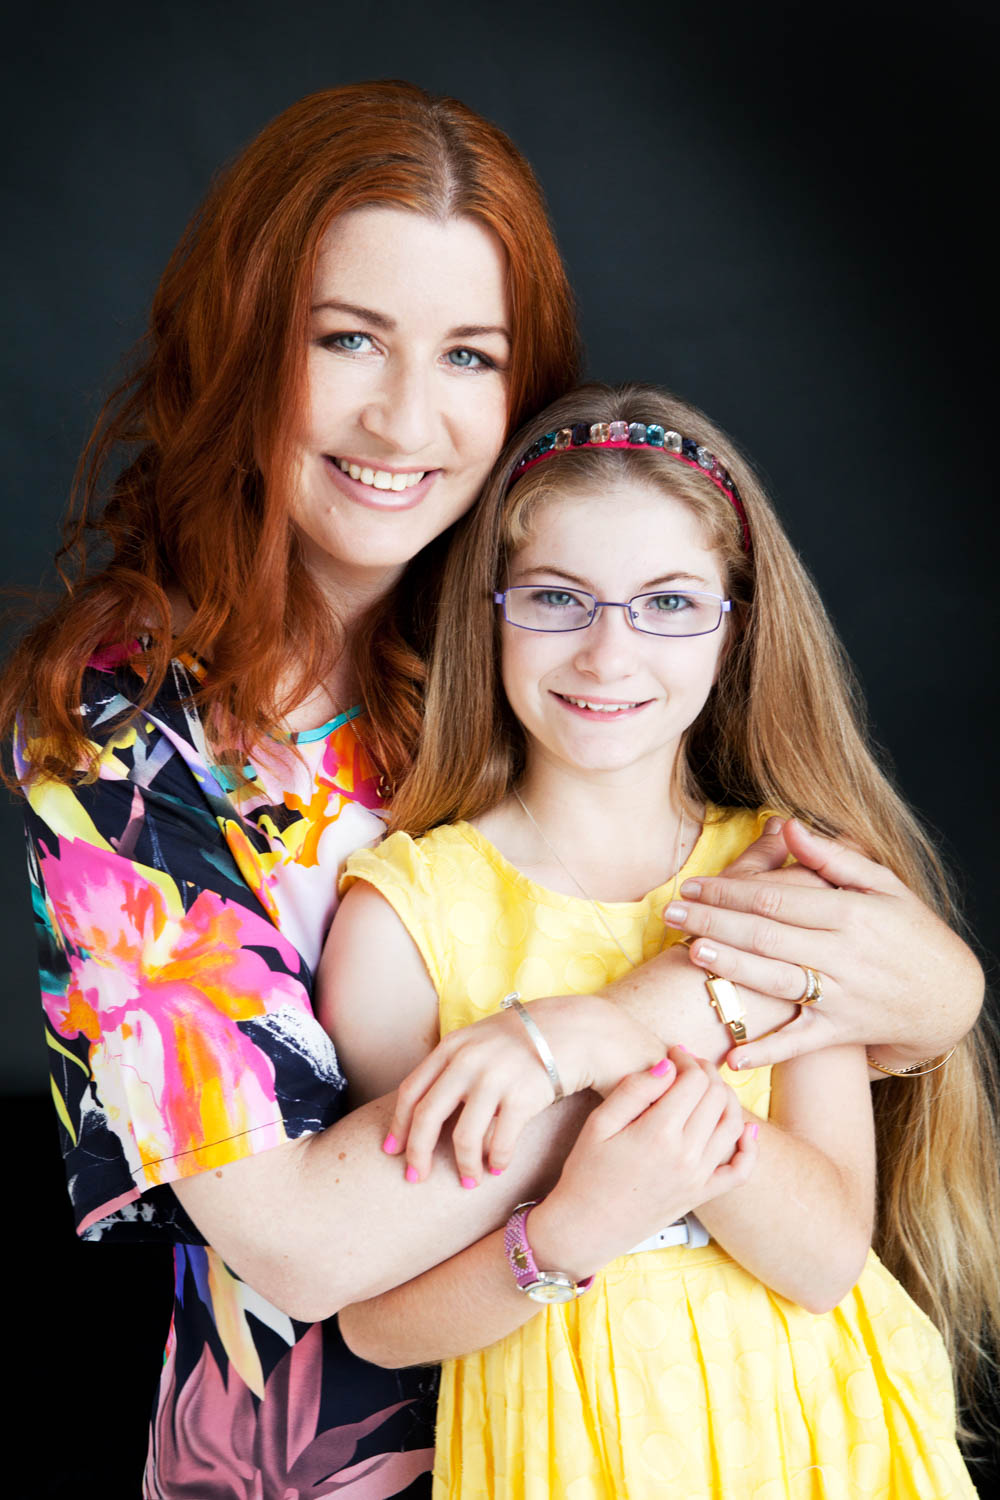 Family_Photographer_Auckland_16731_3271.jpg